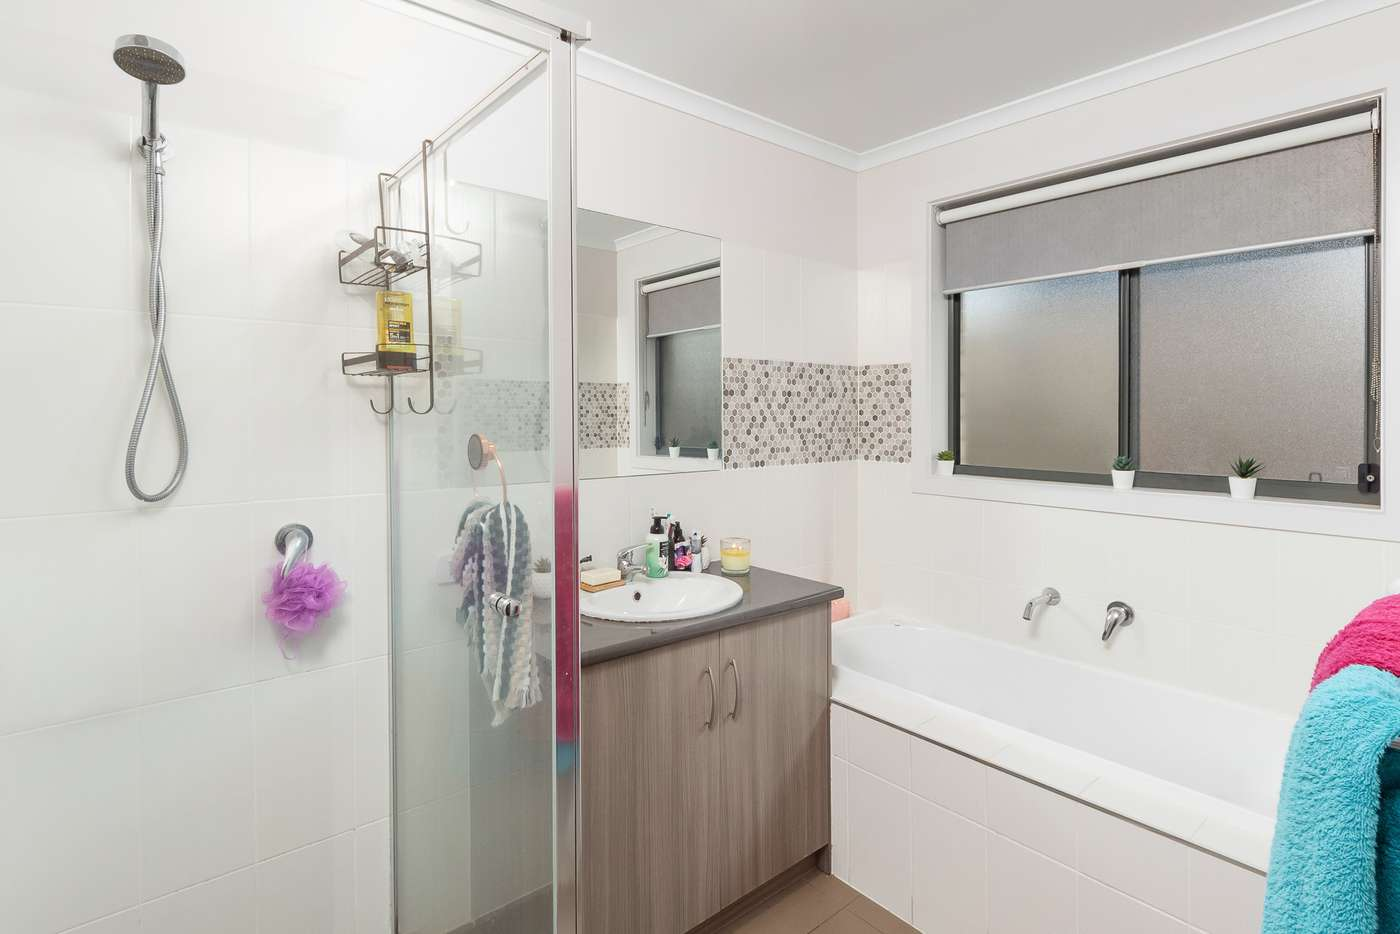 Fifth view of Homely house listing, 11 Weld Cres, Mount Barker SA 5251